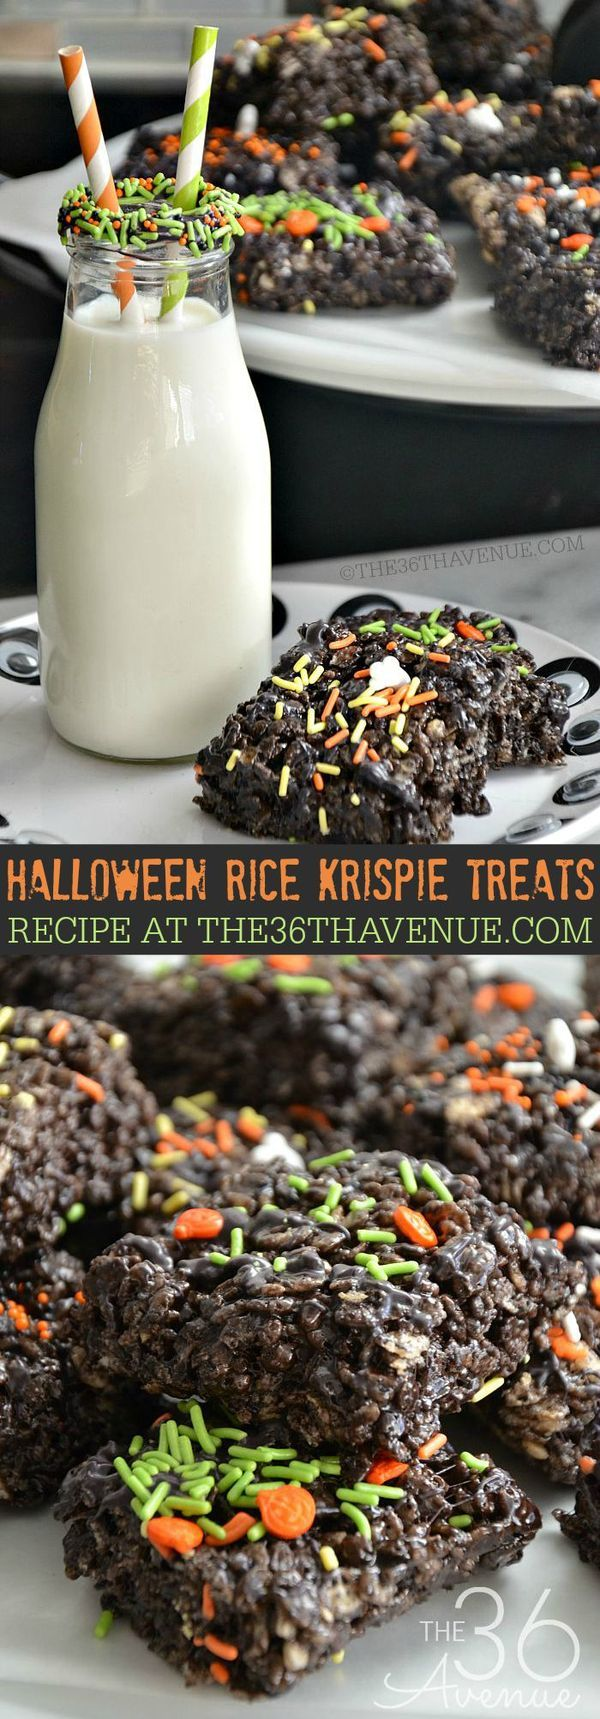 Halloween Rice Krispie Treats recipe at the36thavenue.com ...Click for recipe here : http://www.the36thavenue.com/halloween-rice-krispie-treats/ - This is a great Halloween food idea and a great way to include some cool desserts at your Halloween party!